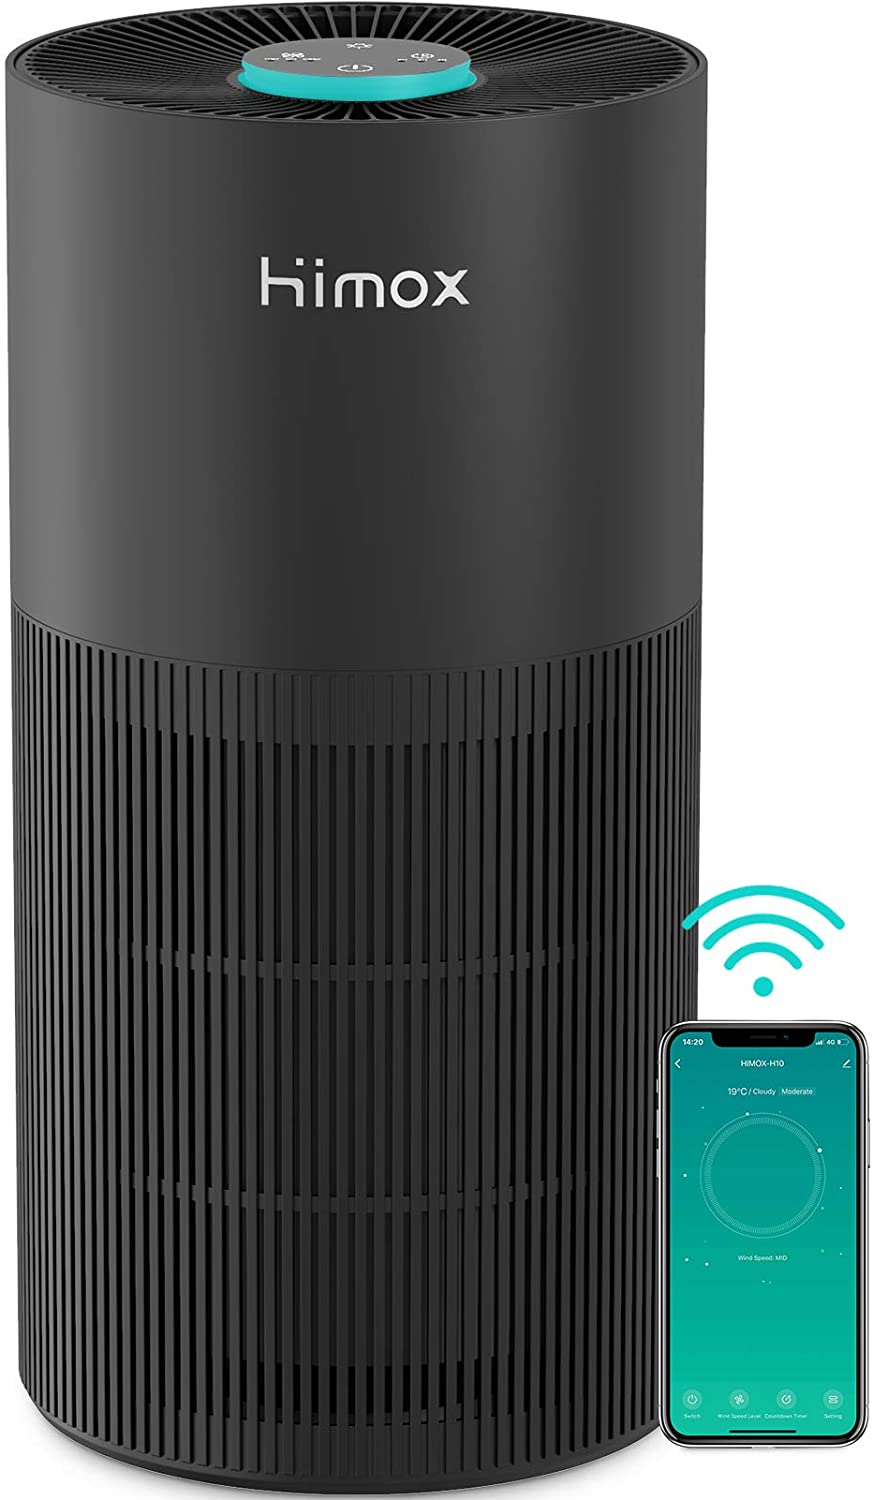 Air Purifier for Home Medical Grade H13 True HEPA Filter Air Cleaner with WiFi for Large Room Bedroom Office Removes 99.97% of Dust Bacteria Viruses Smoke Mold Allergens, 356 sq ft, 100% Ozone Free